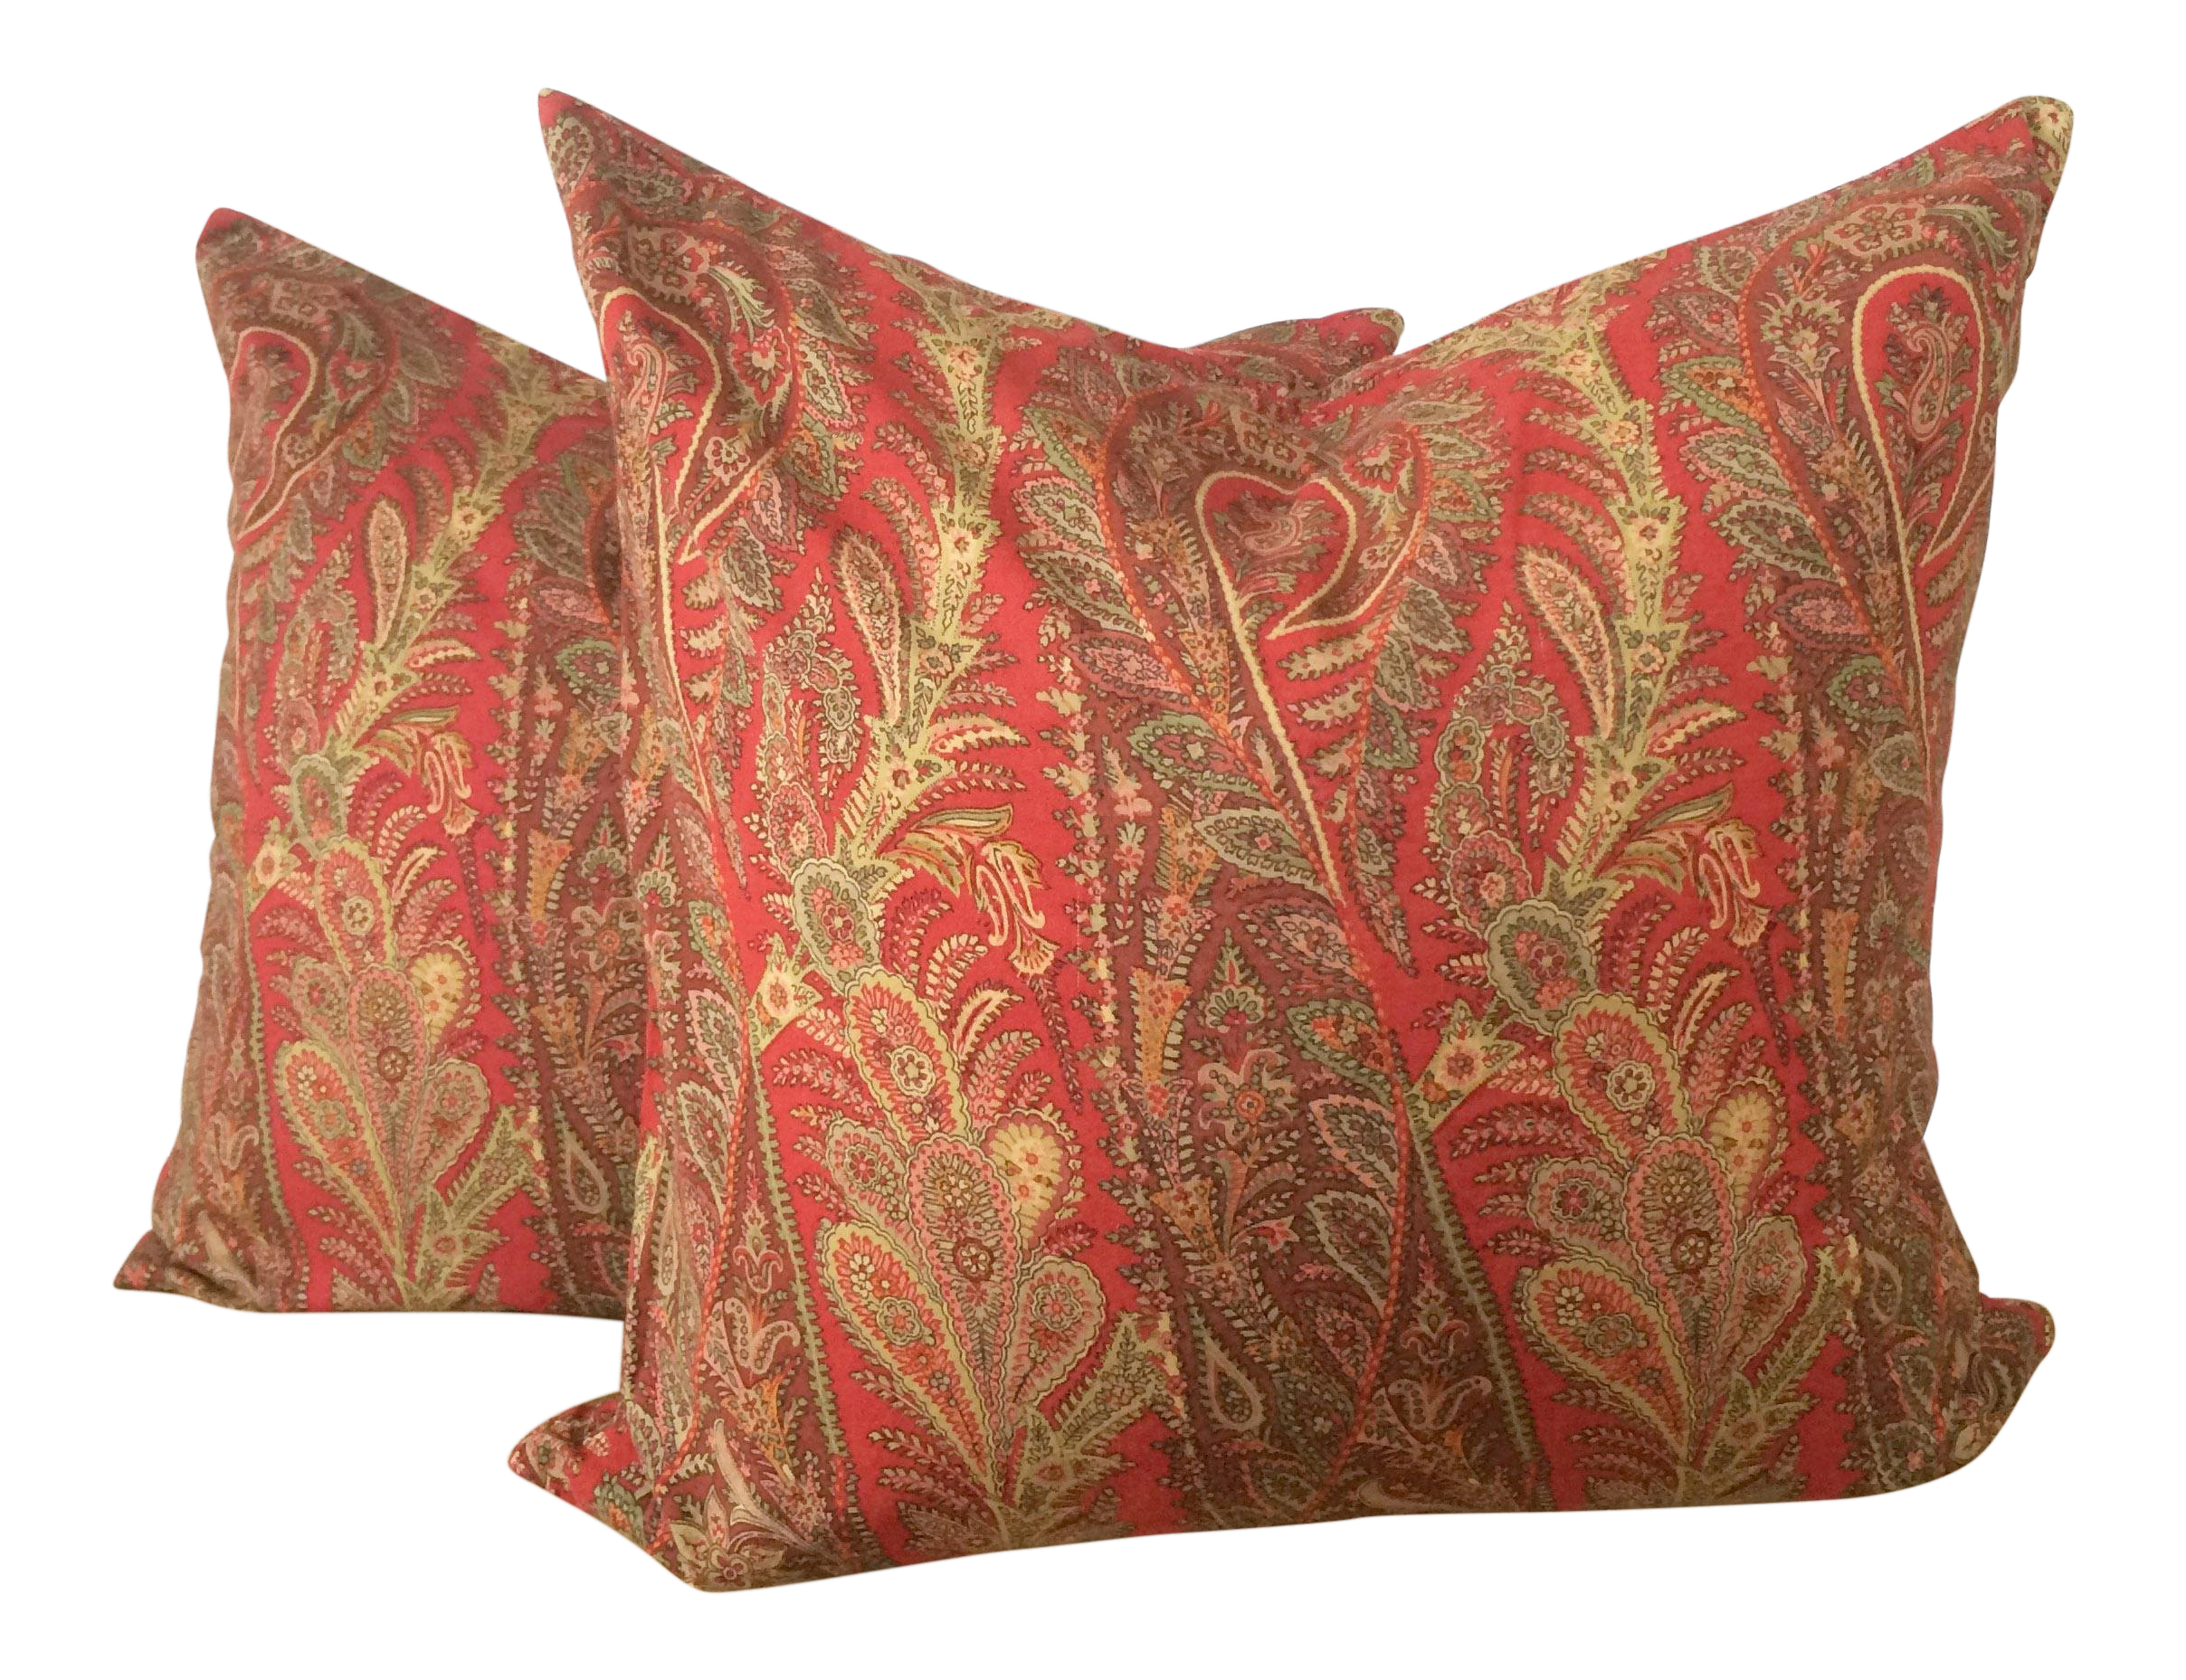 Pottery Barn Red Paisley Pattern Pillows  A Pair